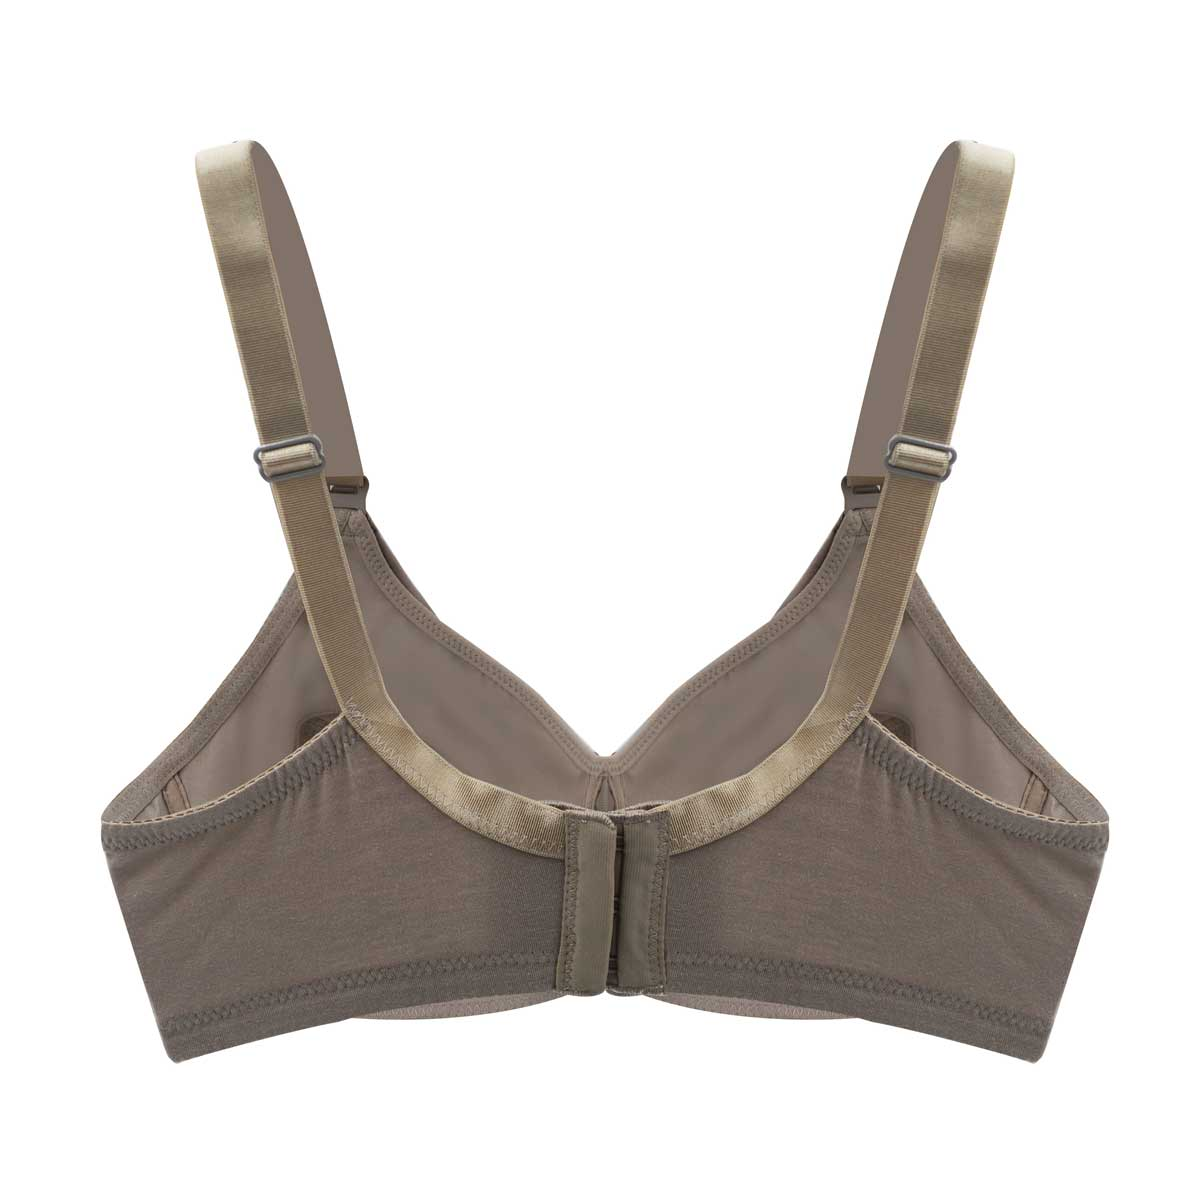 sheer comfort nursing bra